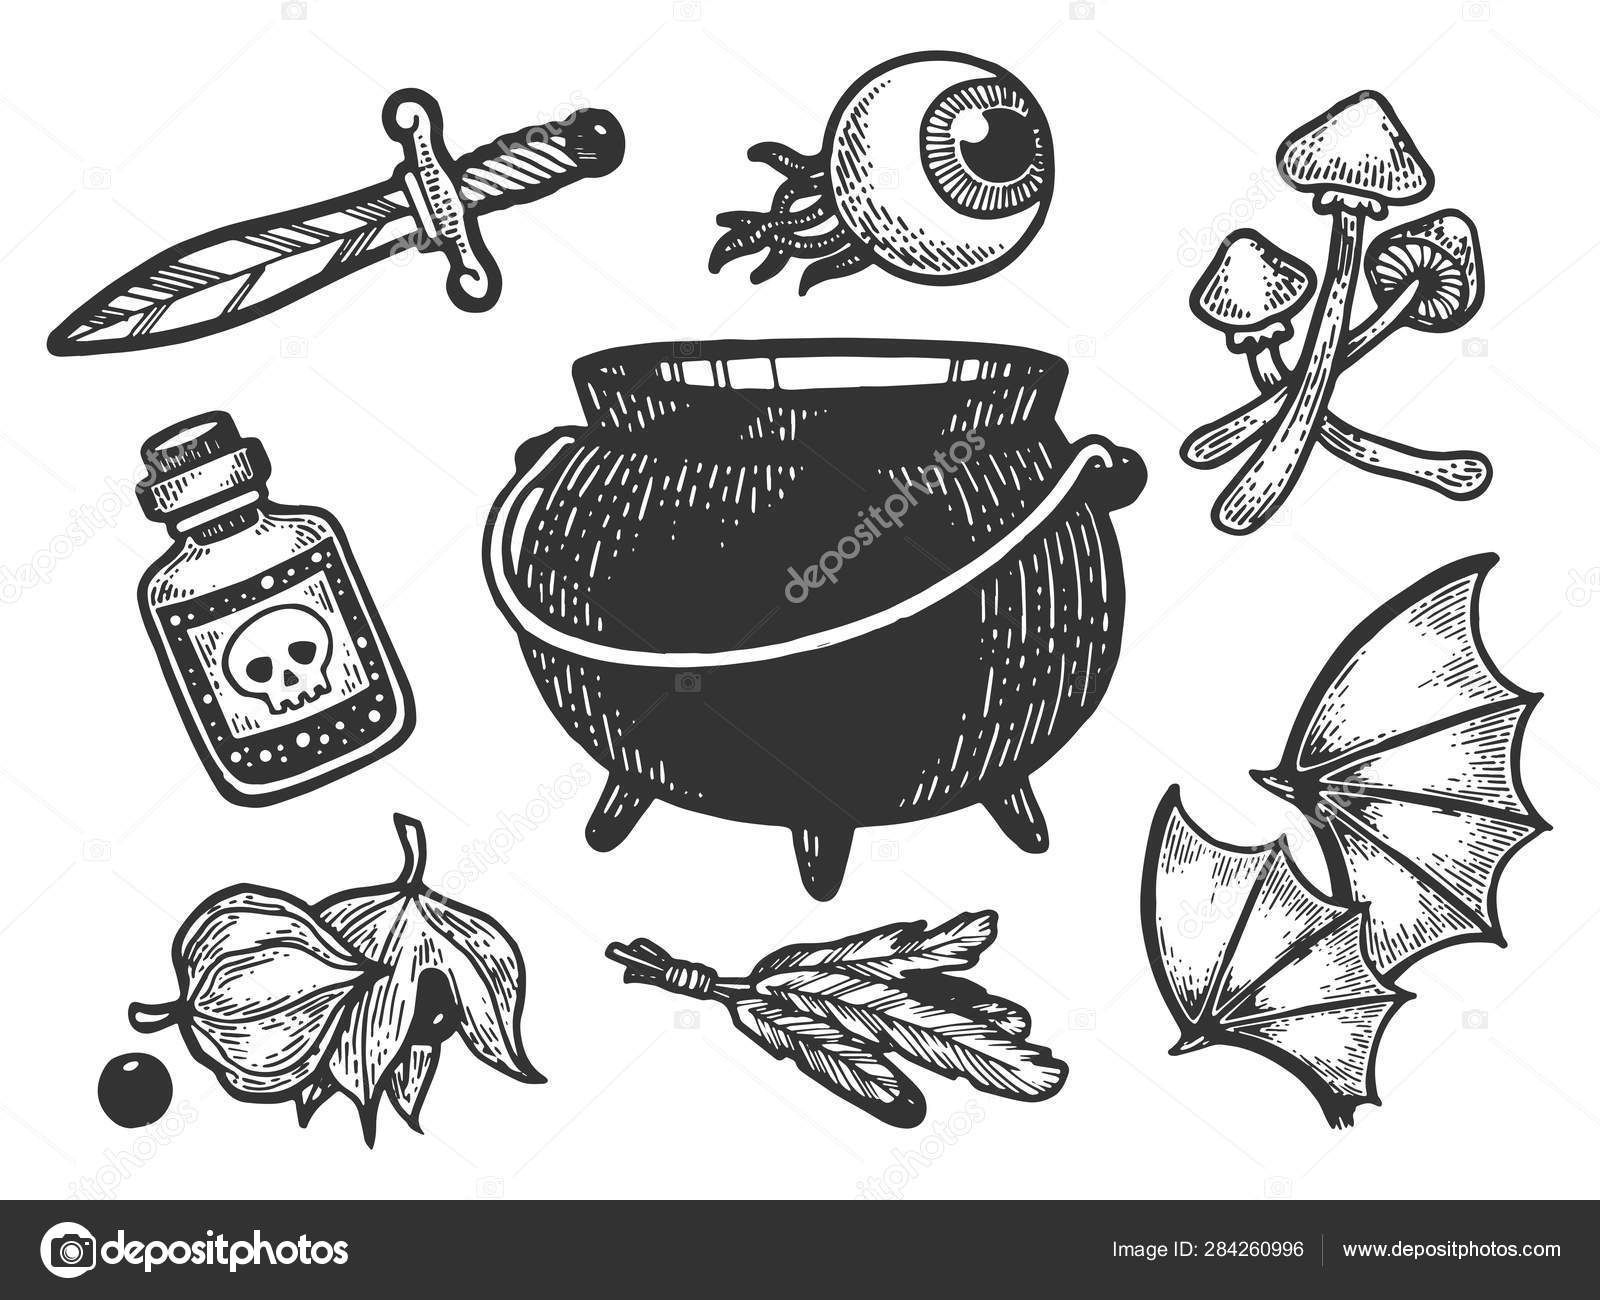 Magical fabulous witch ingredients items sketch engraving